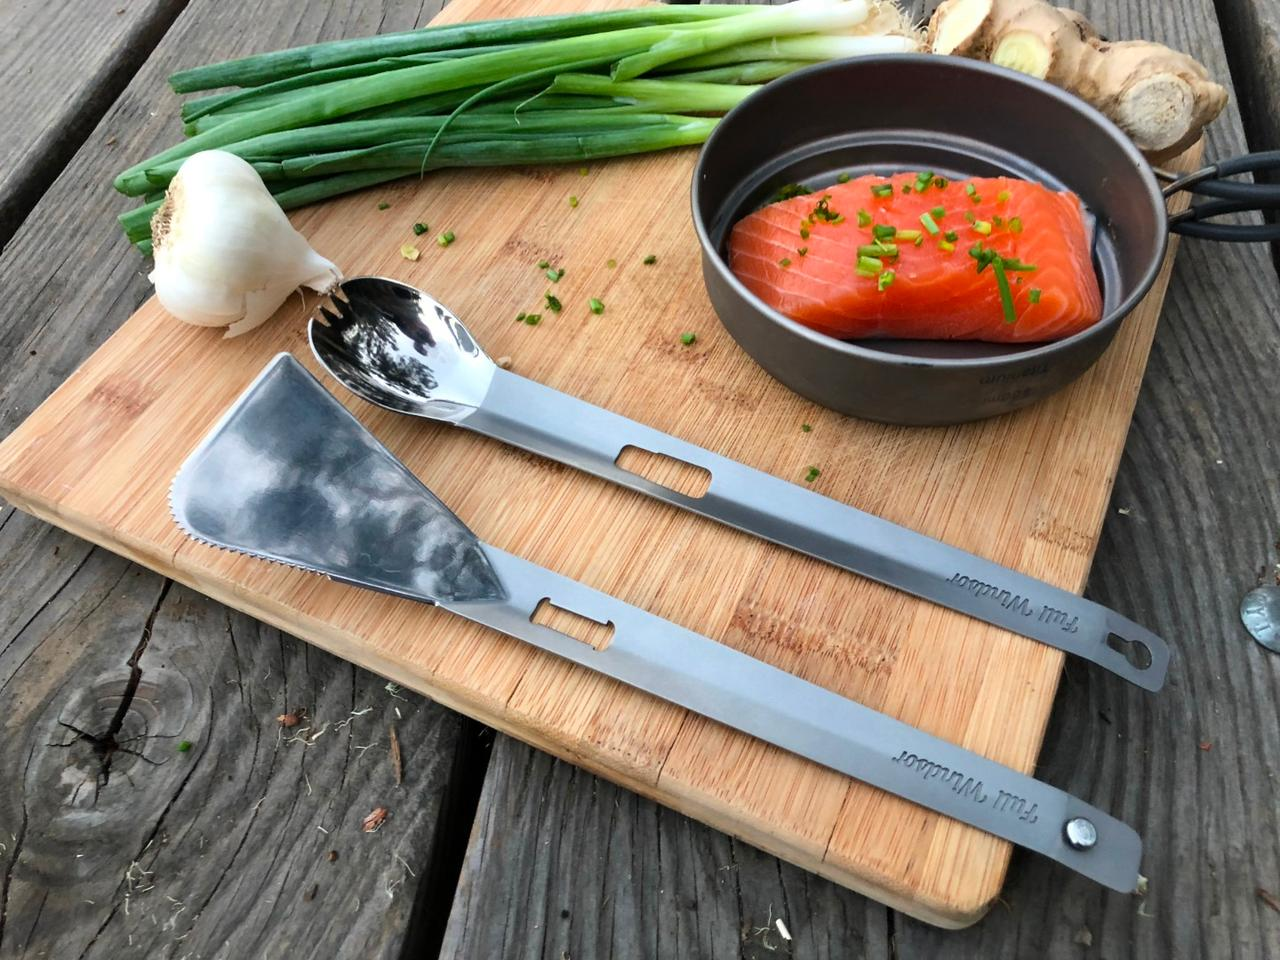 The Splitter is made up of two components, a long spork and a spatula